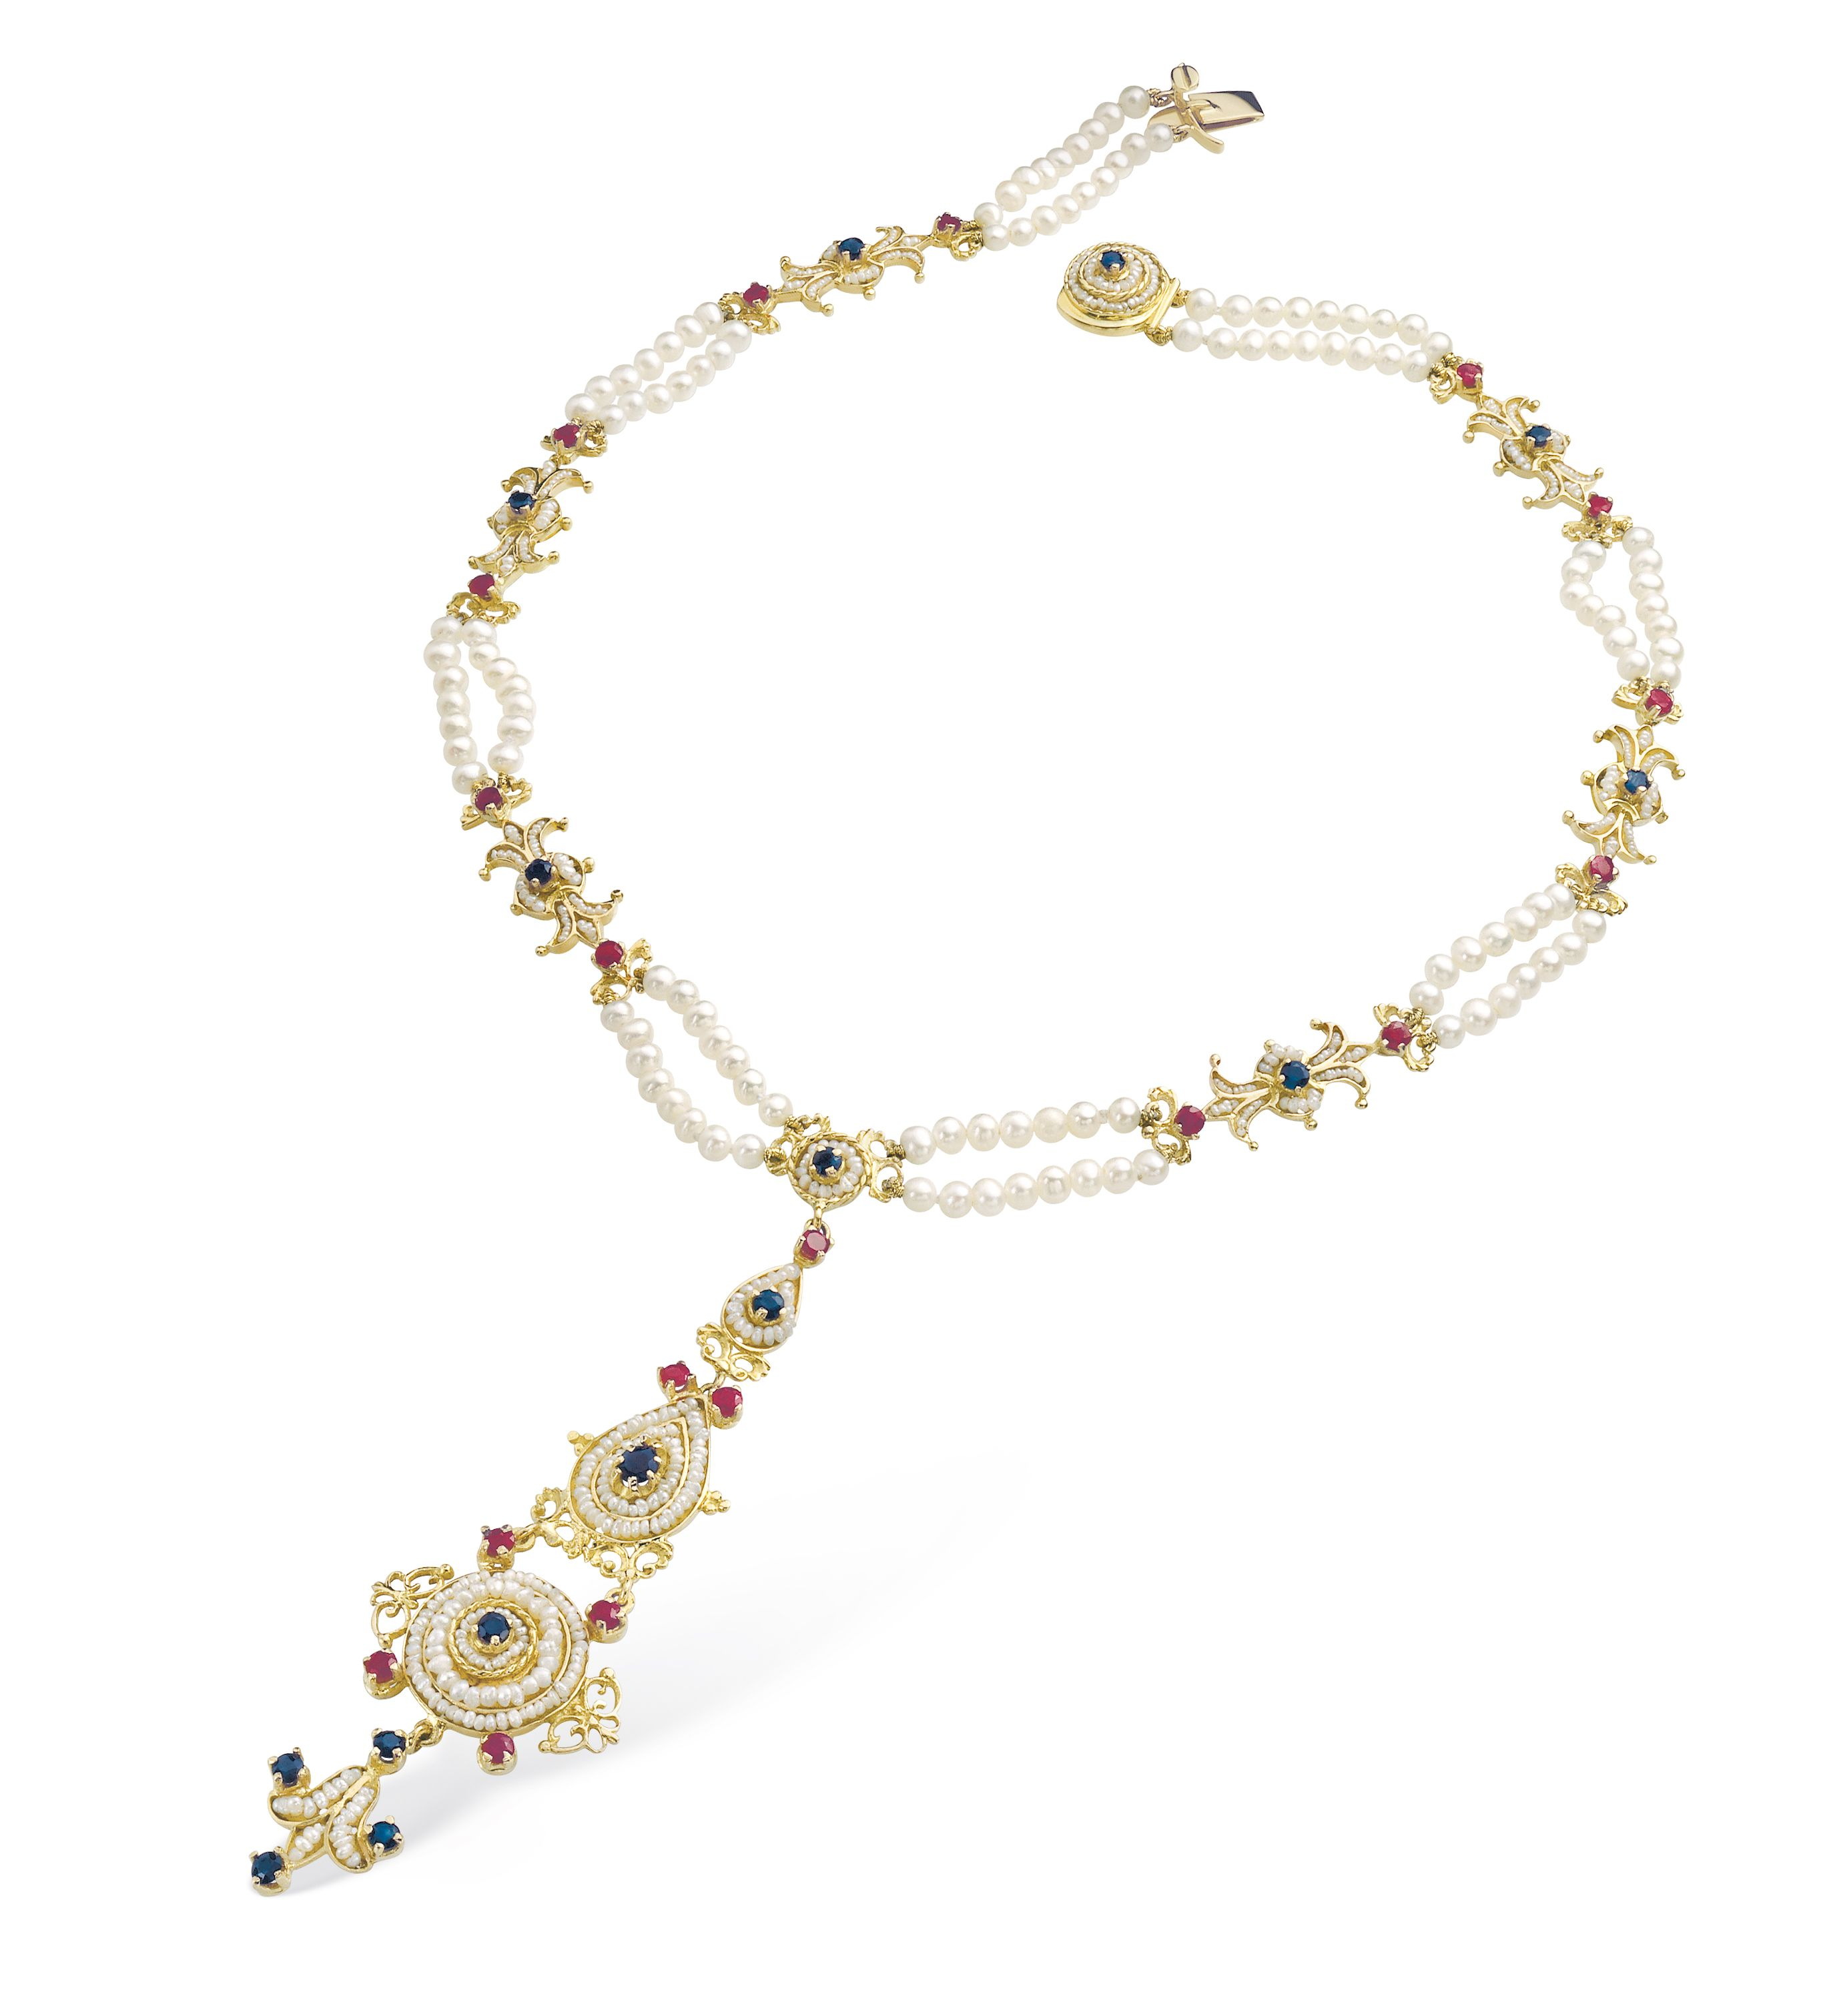 Gold Necklace with Pearls and precious Stones (13023)